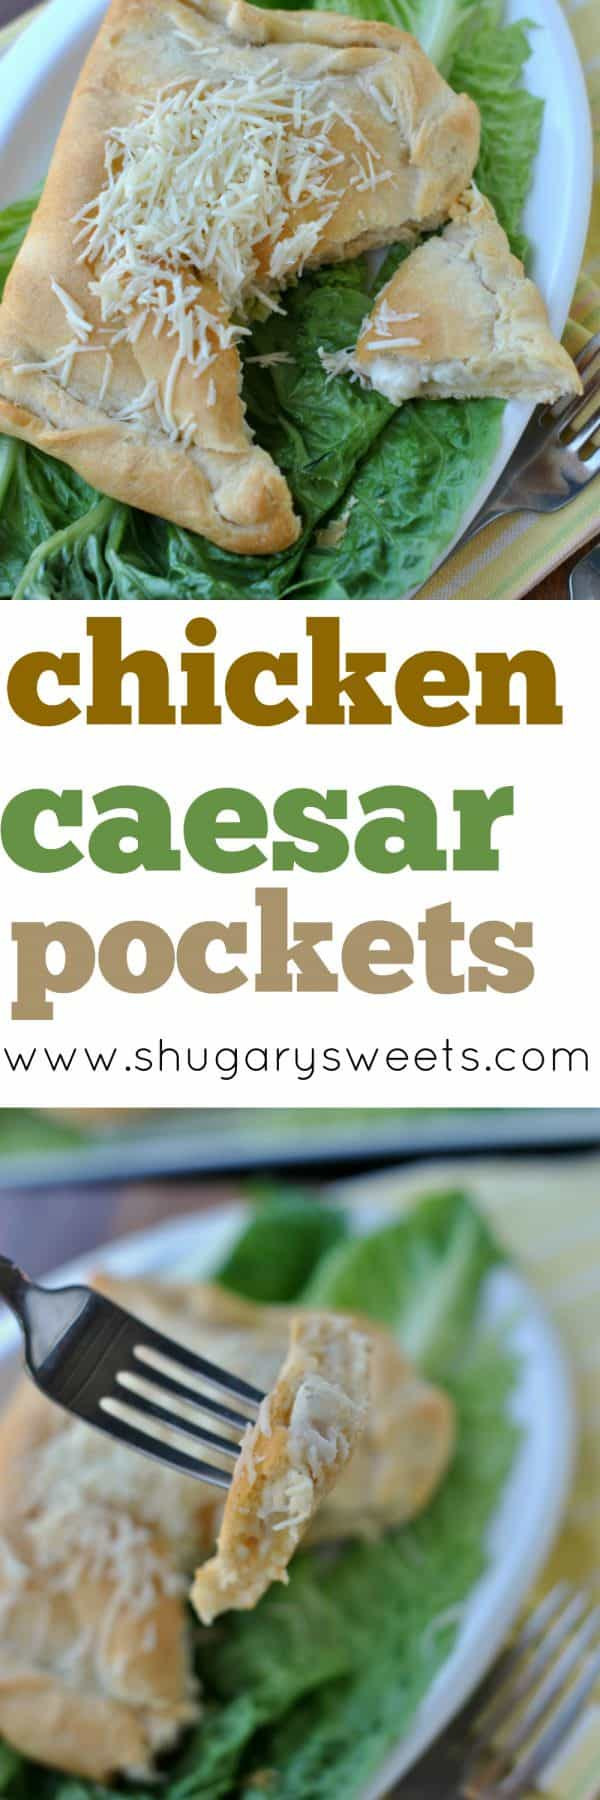 Chicken Caesar pockets are your delicious dinner solution! Made with Pillsbury Crescent rolls, this dinner comes together in under 30 minutes!